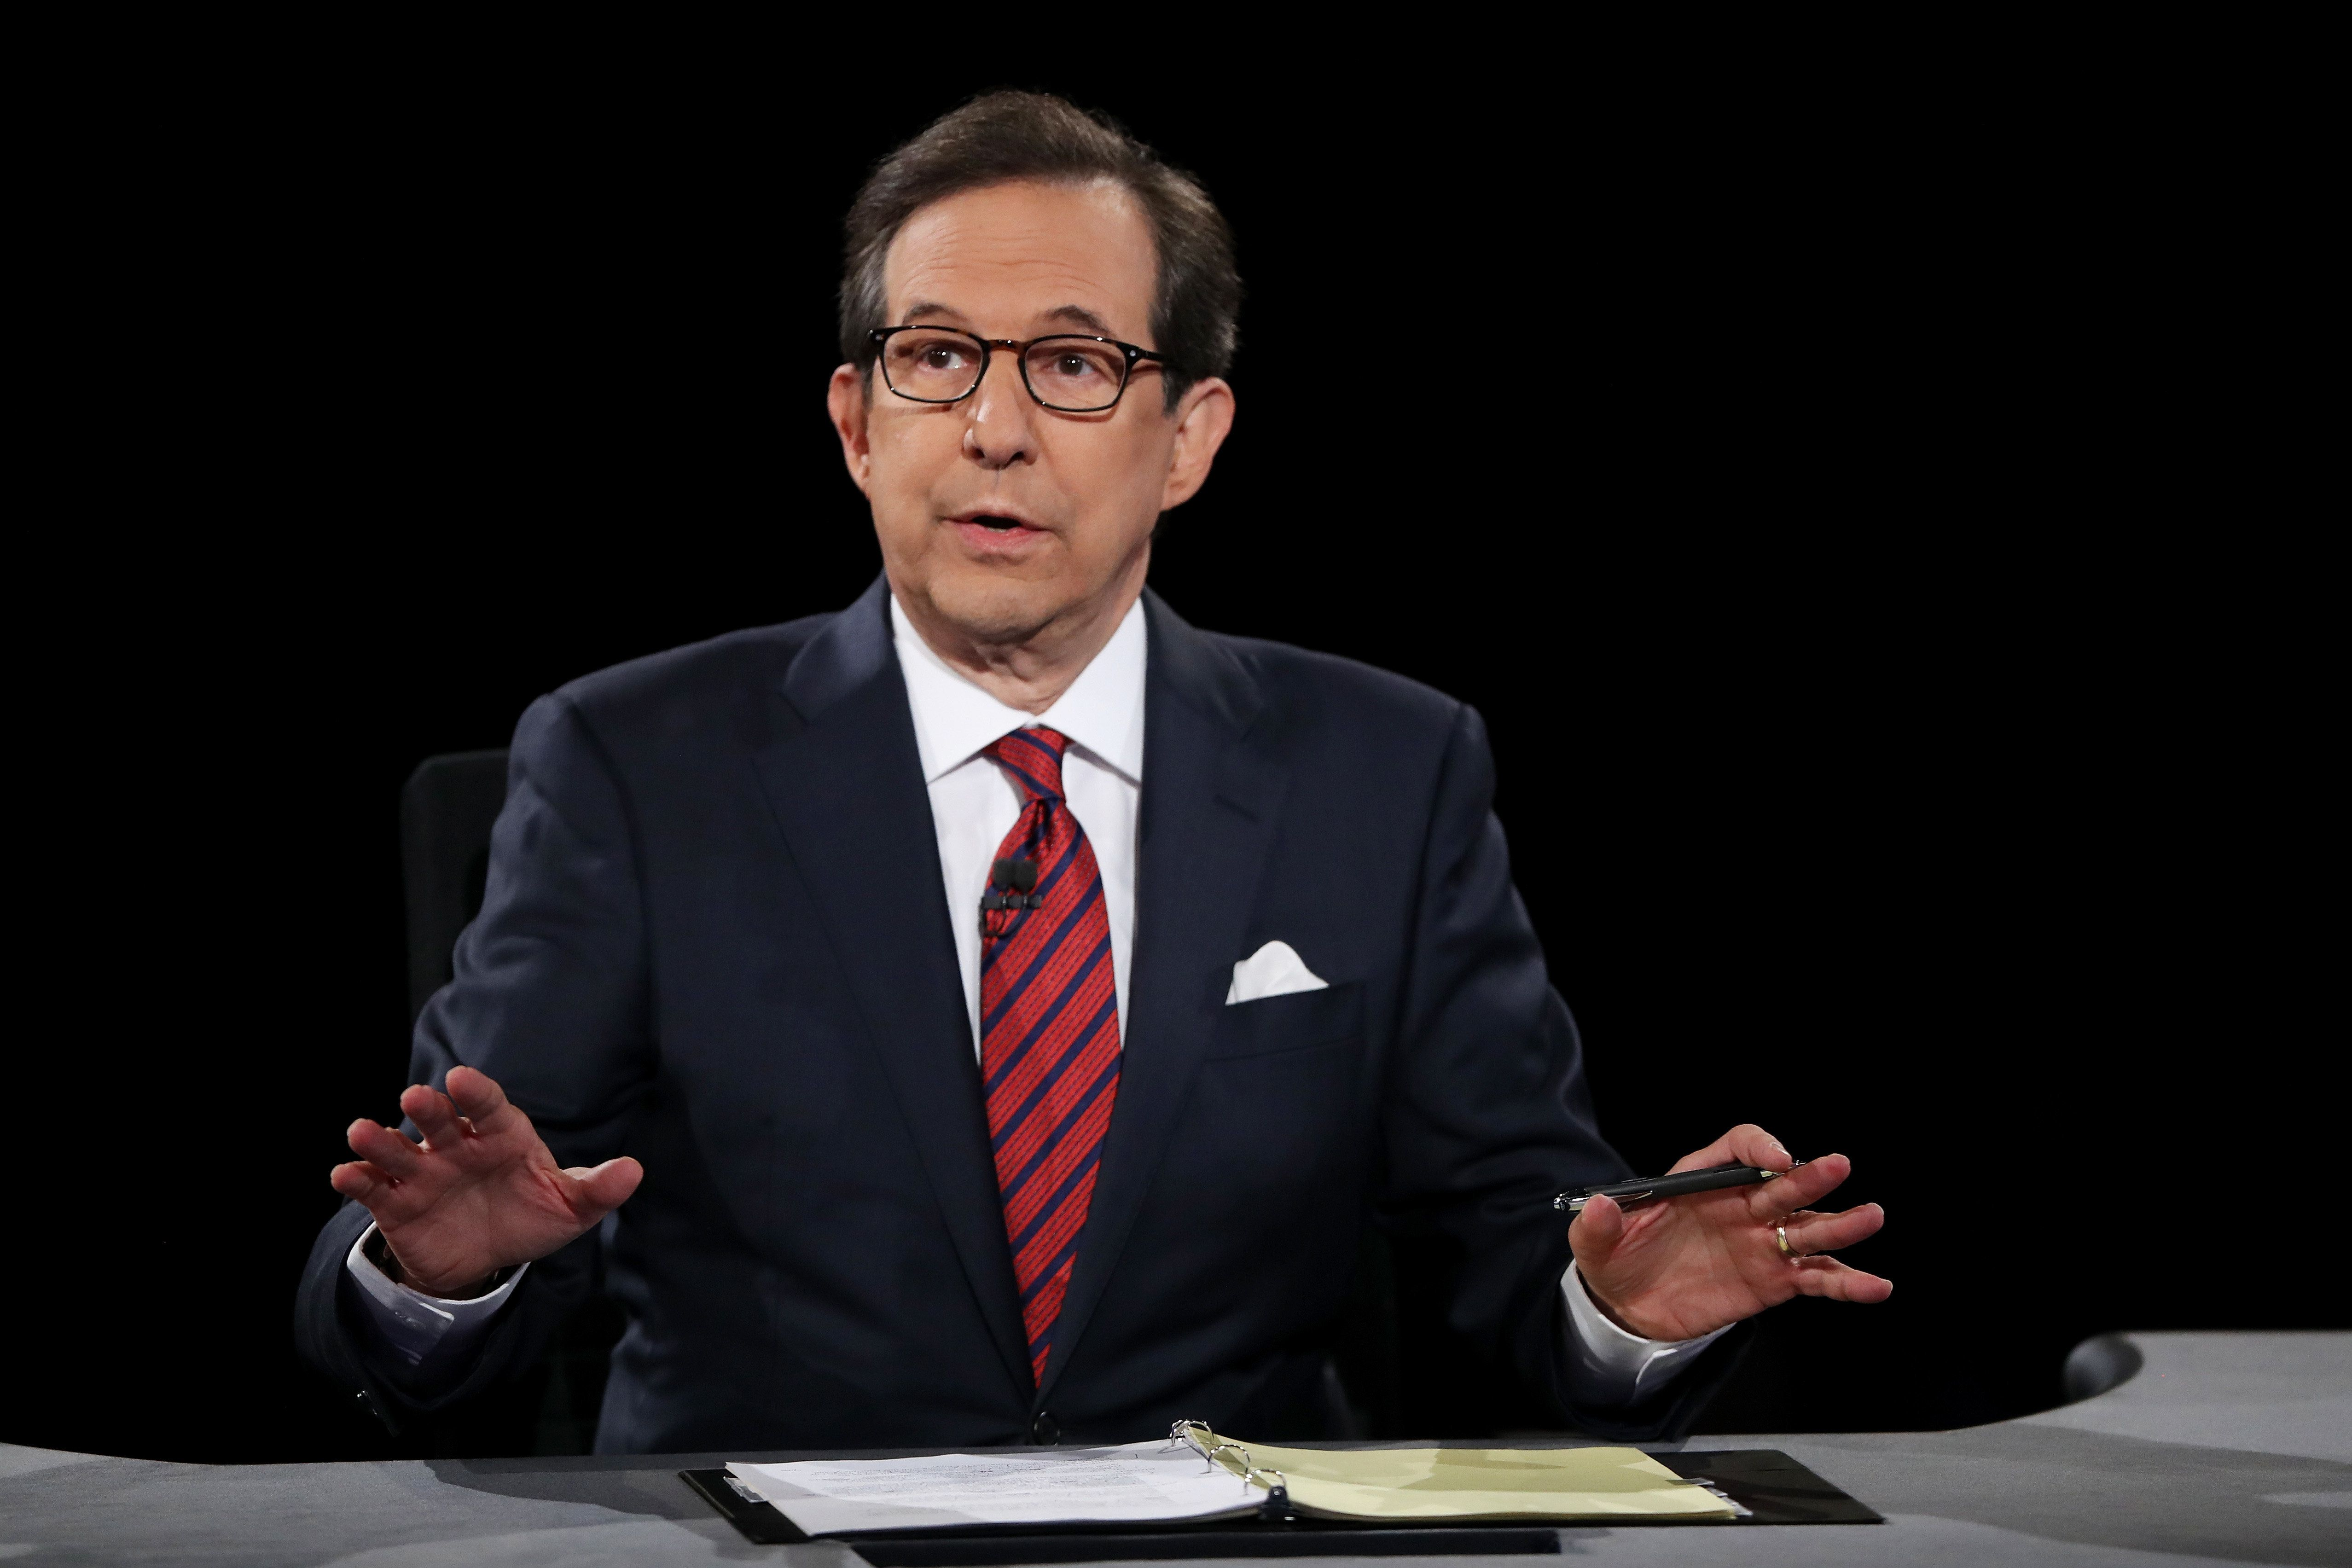 LAS VEGAS, NV - OCTOBER 19:  Fox News anchor and moderator Chris Wallace asks the candidates a question during the third U.S. presidential debate at the Thomas & Mack Center on October 19, 2016 in Las Vegas, Nevada. Tonight is the final debate ahead of Election Day on November 8.  (Photo by Joe Raedle/Getty Images)